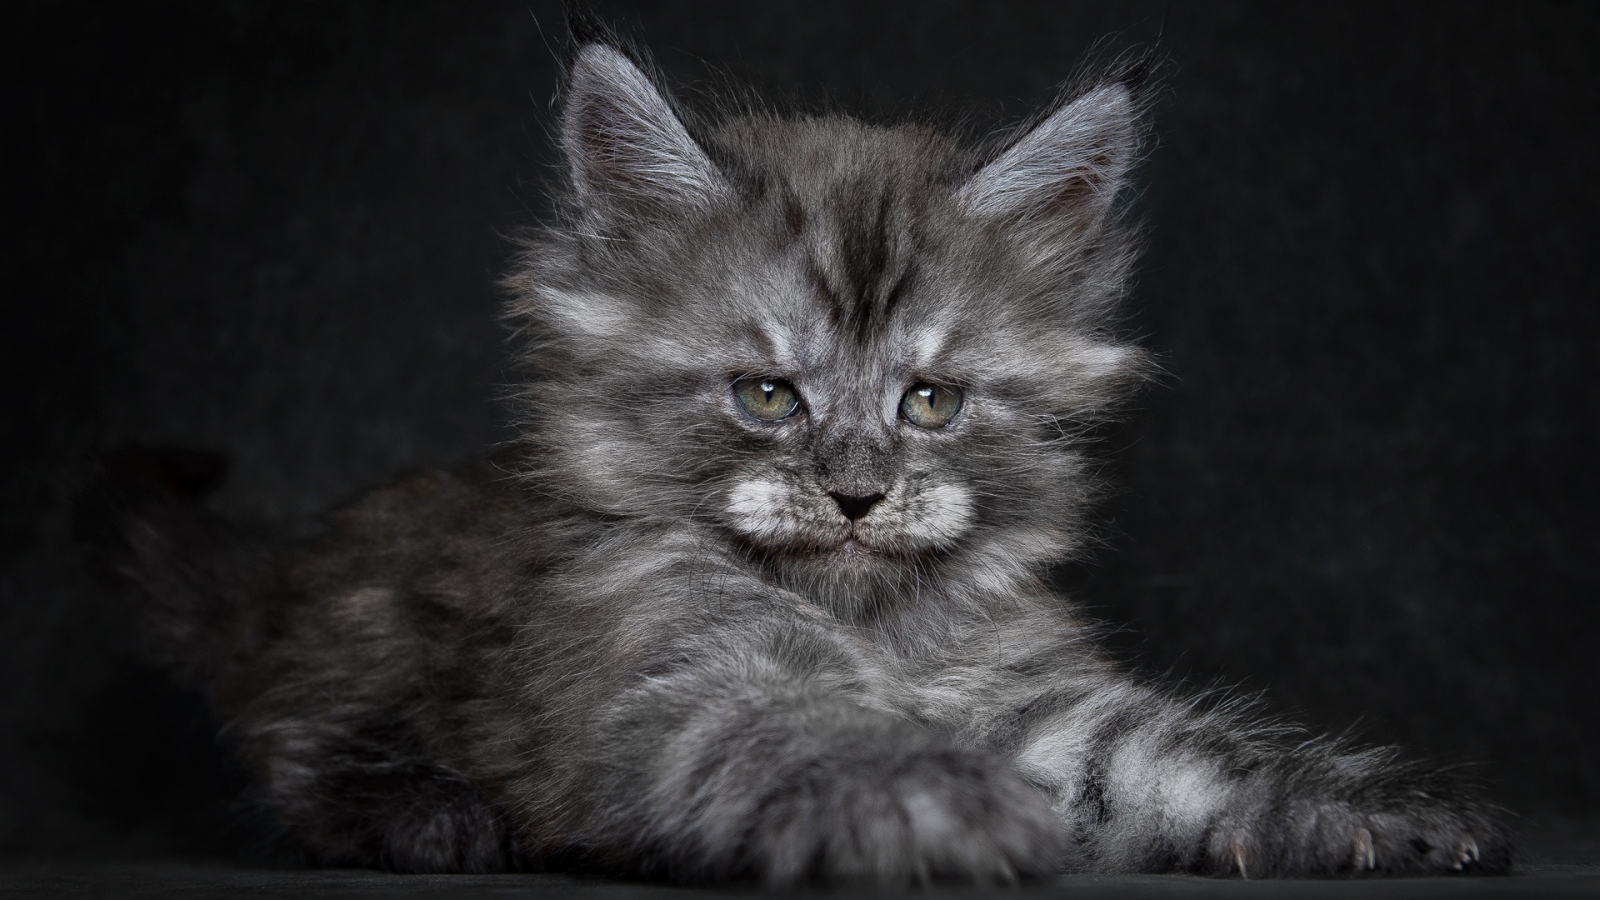 Cute Fluffy Kitten Hd Wallpaper Wallpaperfx